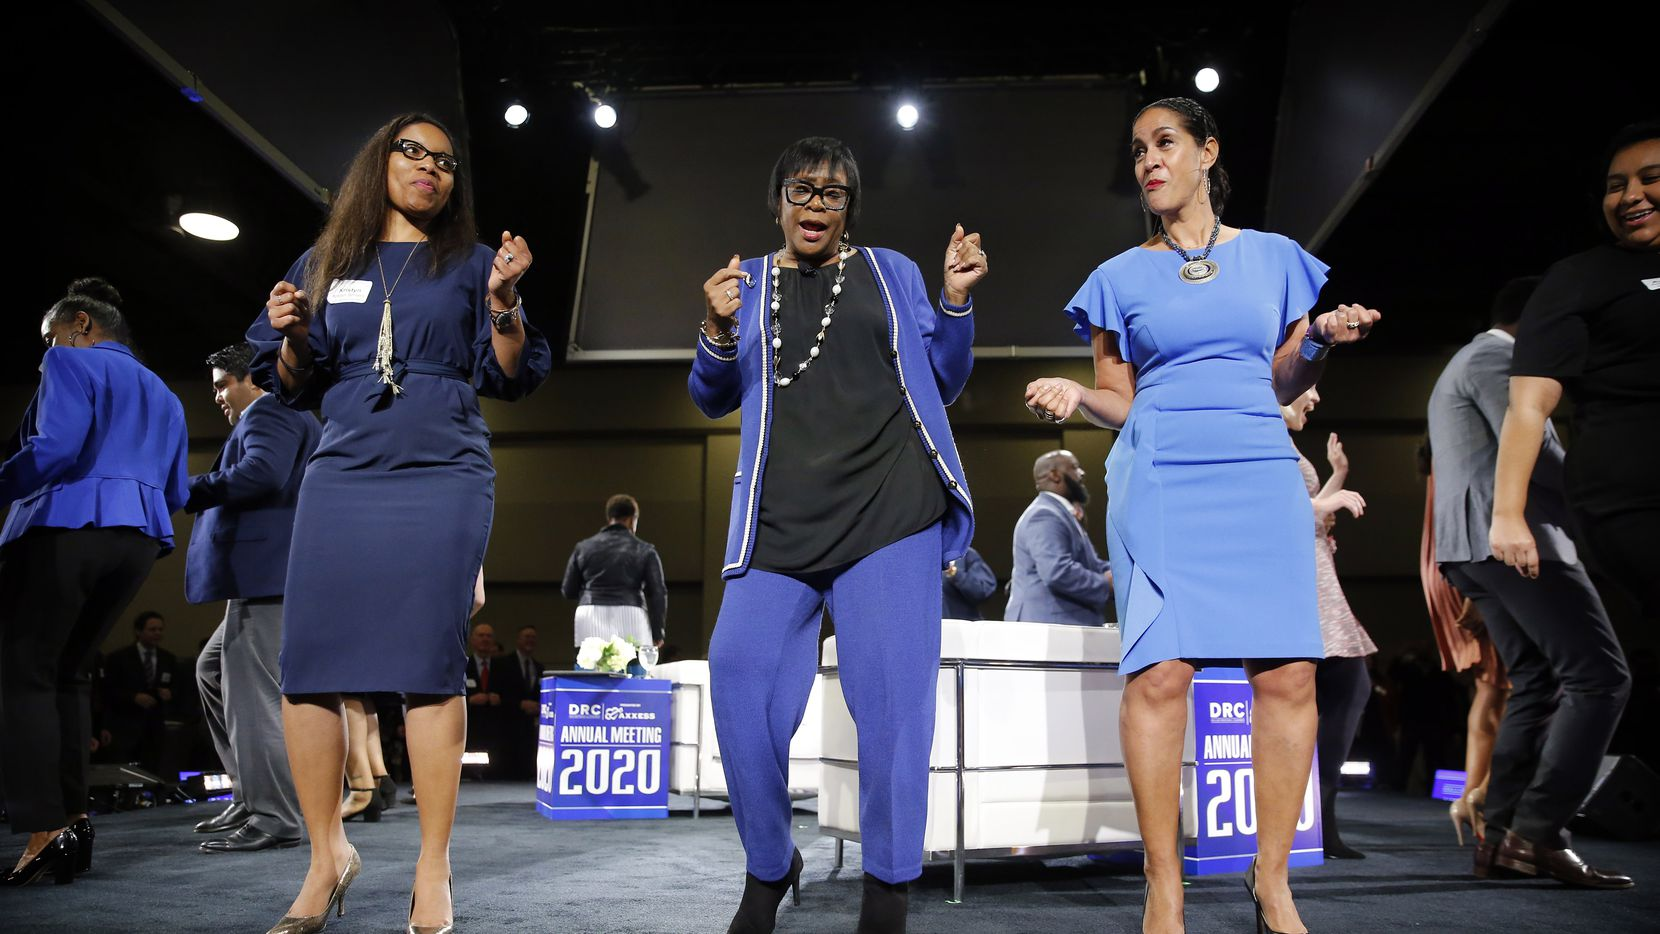 Dallas Mavericks CEO Cynt Marshall (center), Texas Women's Foundation, senior director of communications Kristyn Senters (left) and Women of Power chief brand officer Caroline Clarke (right) dance to the Cupid shuffle to close out the keynote conversation at Dallas Regional Chamber's annual meeting and luncheon at the Hilton Anatole hotel in Dallas on Thursday. (Tom Fox/The Dallas Morning News)